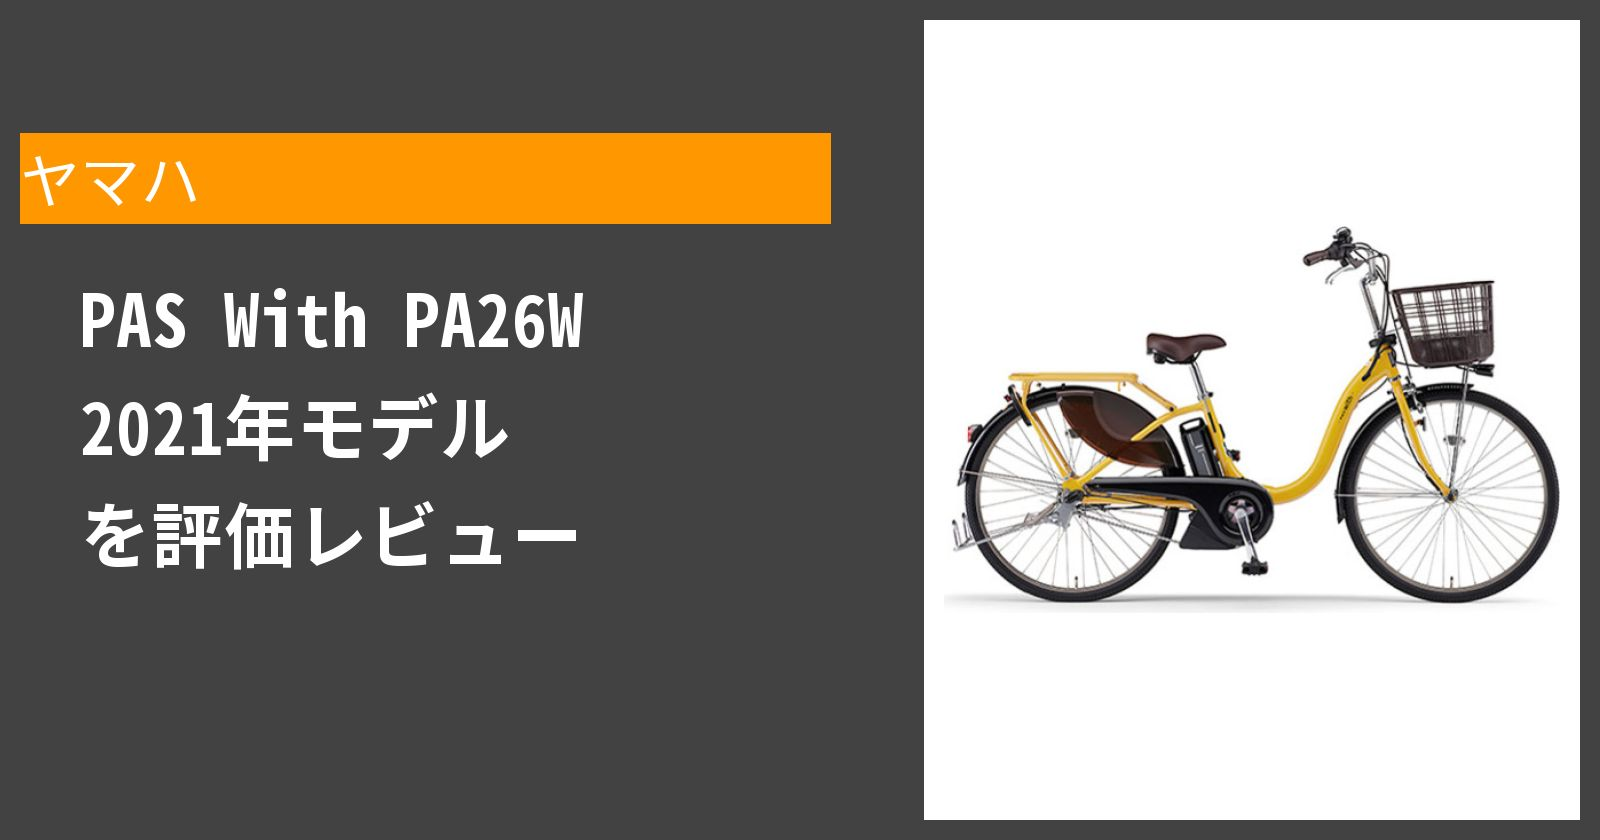 PAS With PA26W 2021年モデルを徹底評価